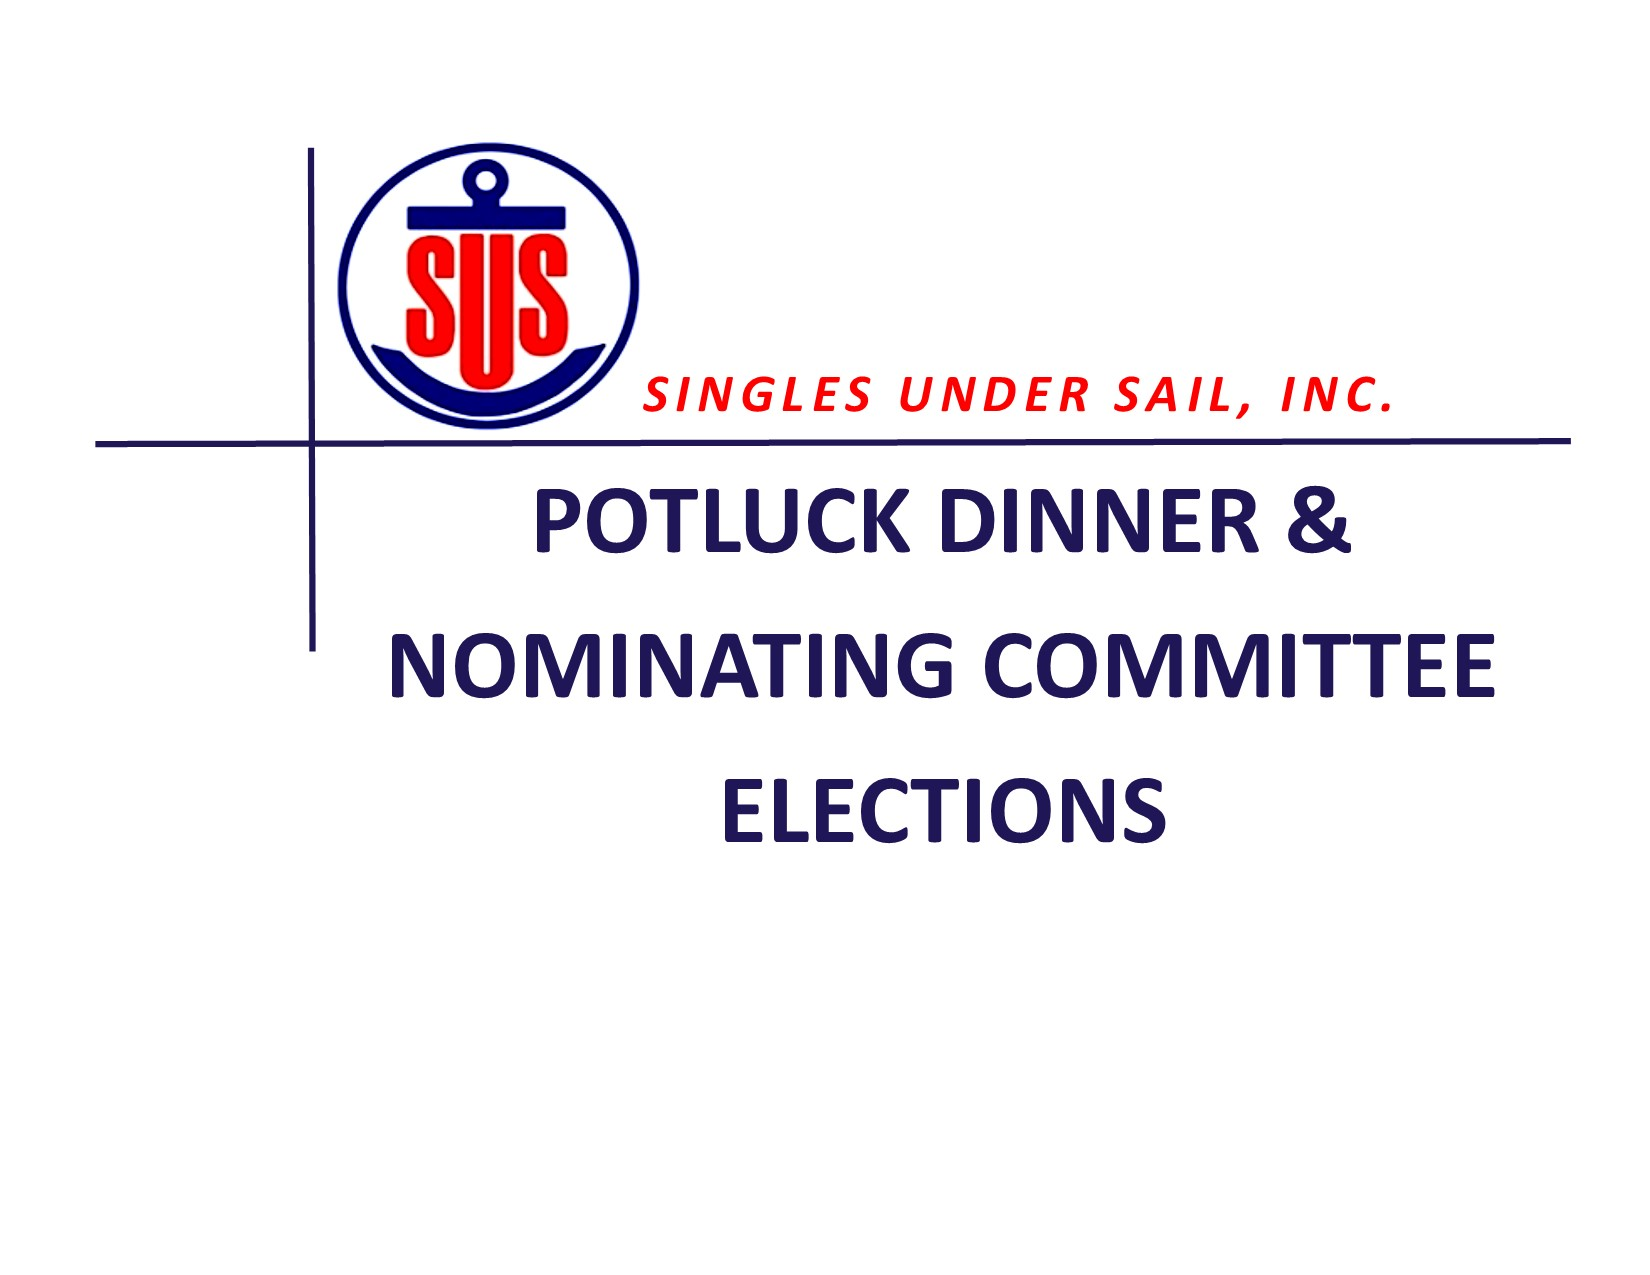 Potluck Dinner & Nominating Committee Elections